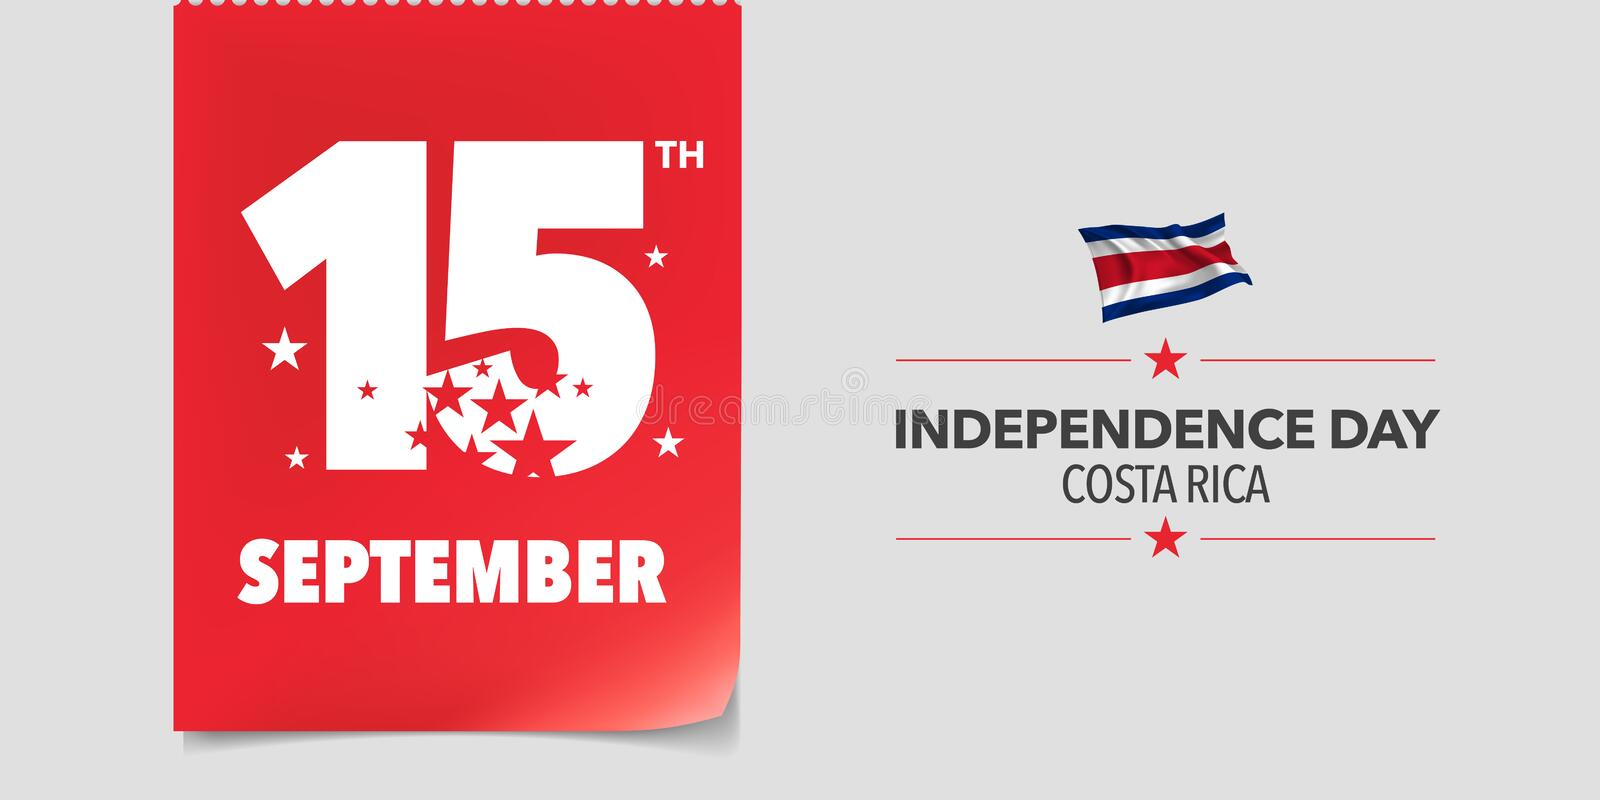 Costa Rica happy independence day greeting card, banner, vector illustration vector illustration